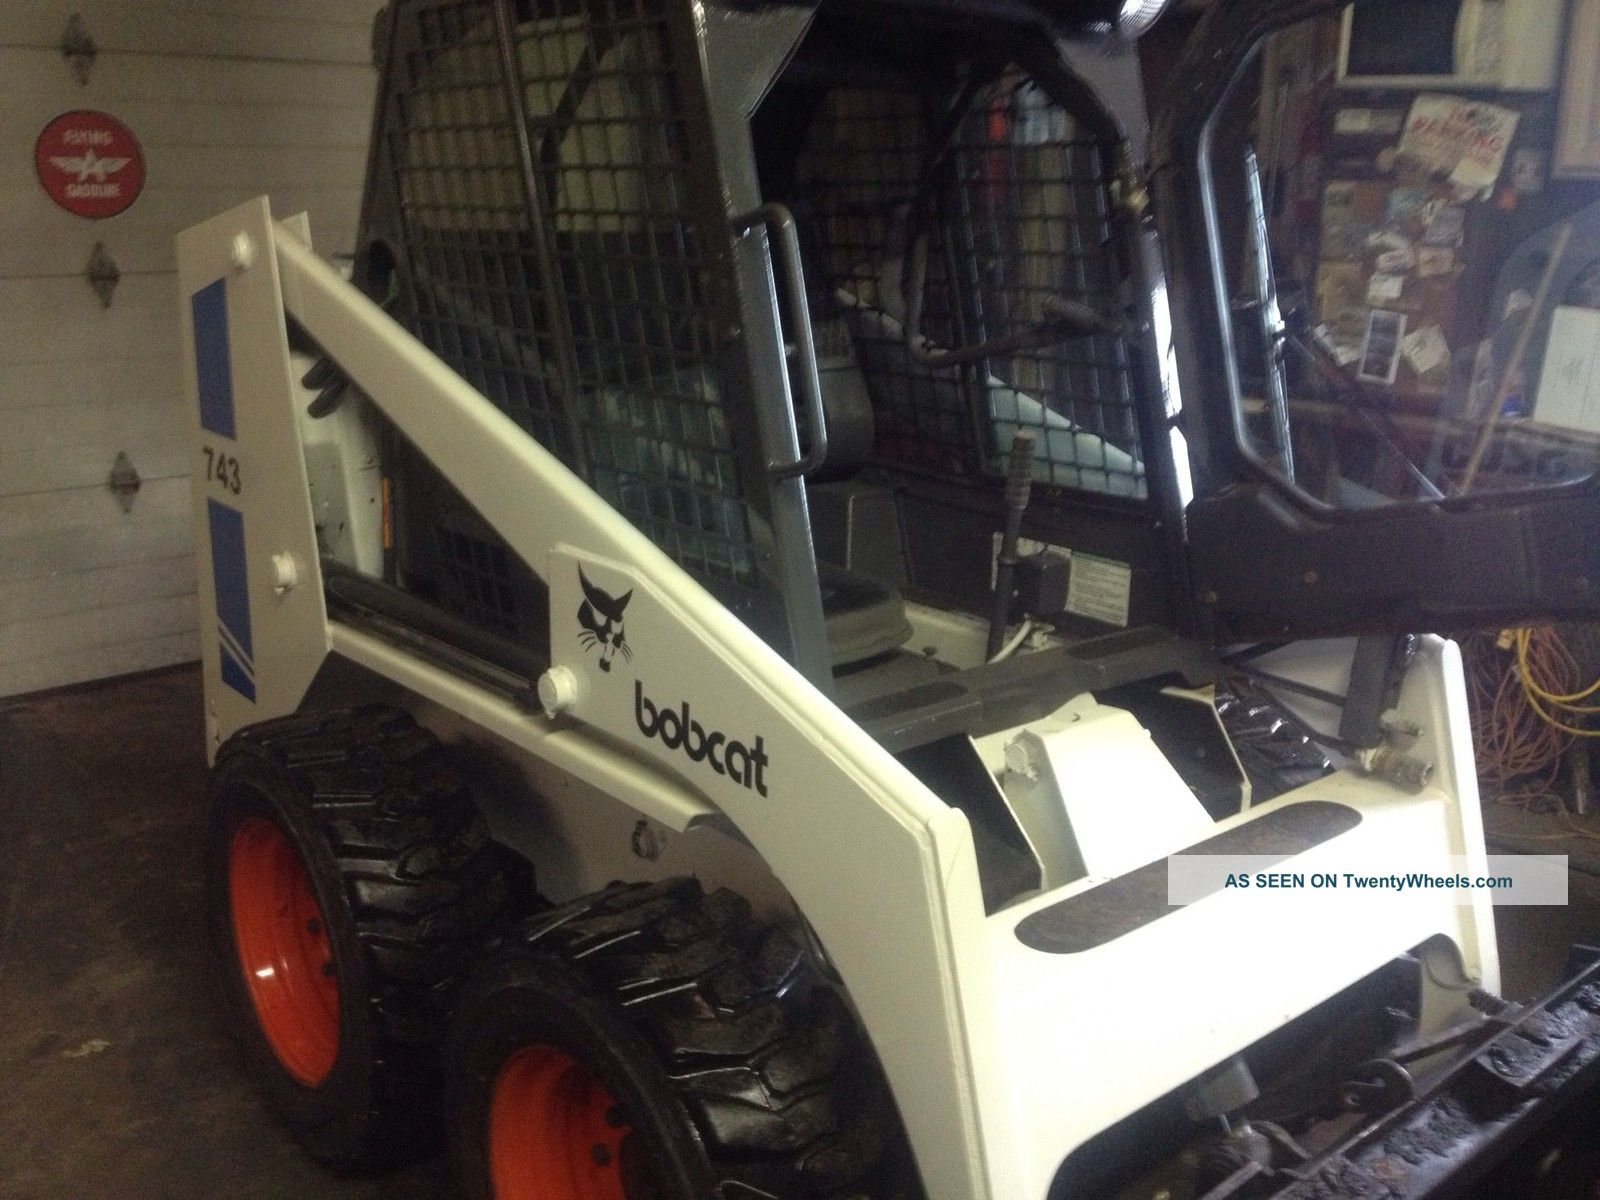 hight resolution of bobcat 743 skid steer loader diesel enclosed cab and heat 2080 hrs bob cat